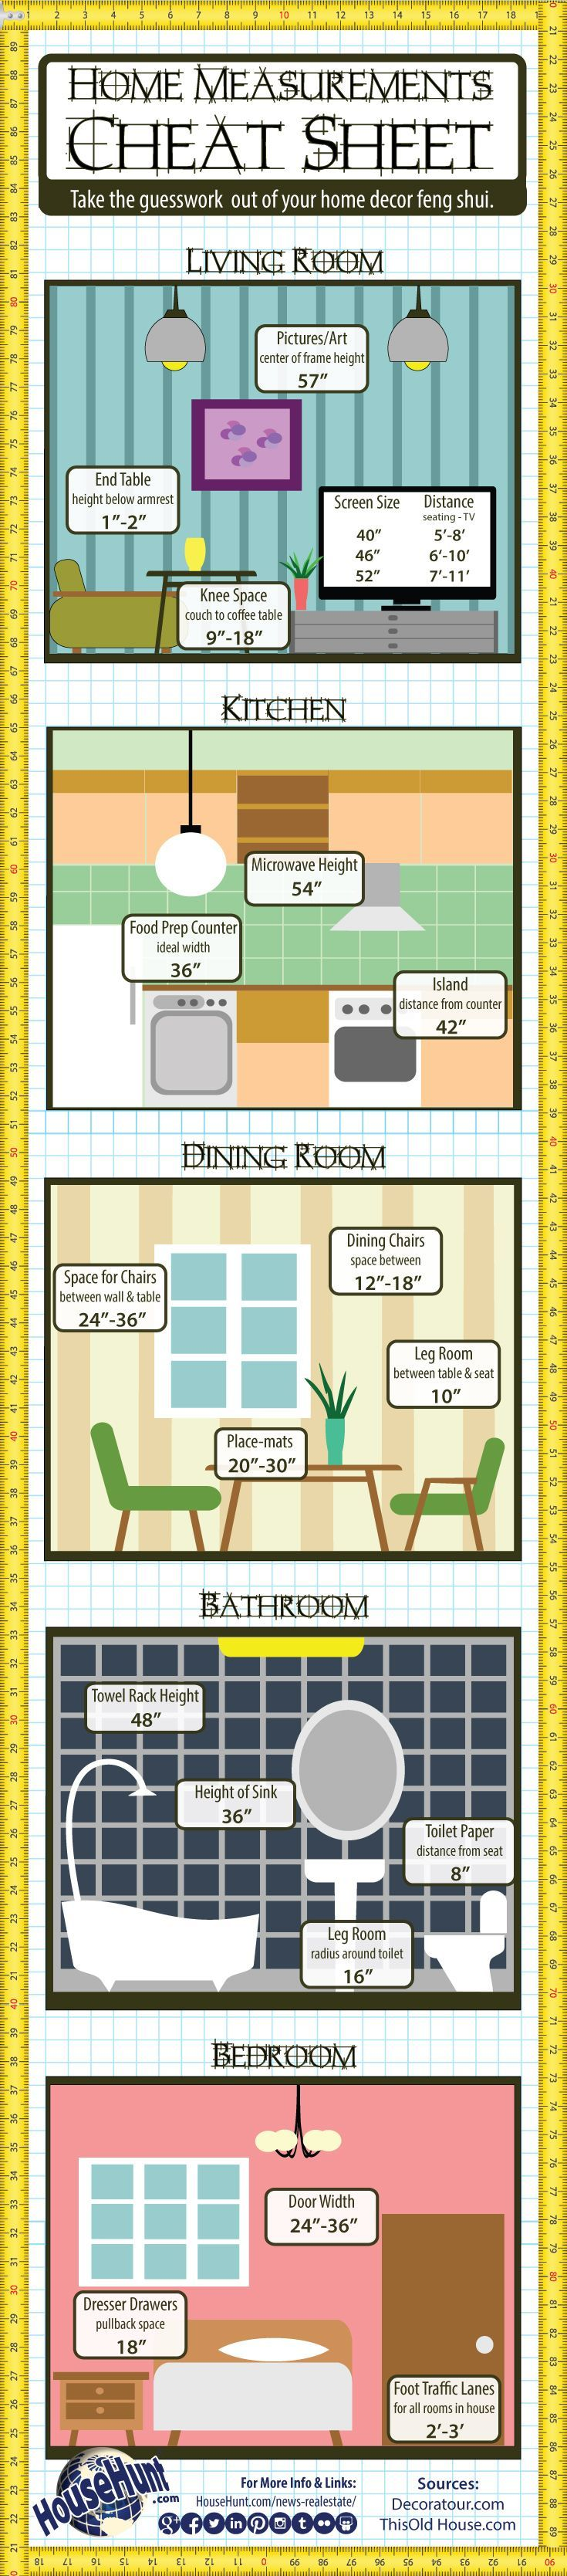 Home-Measurements-Cheat-Sheet